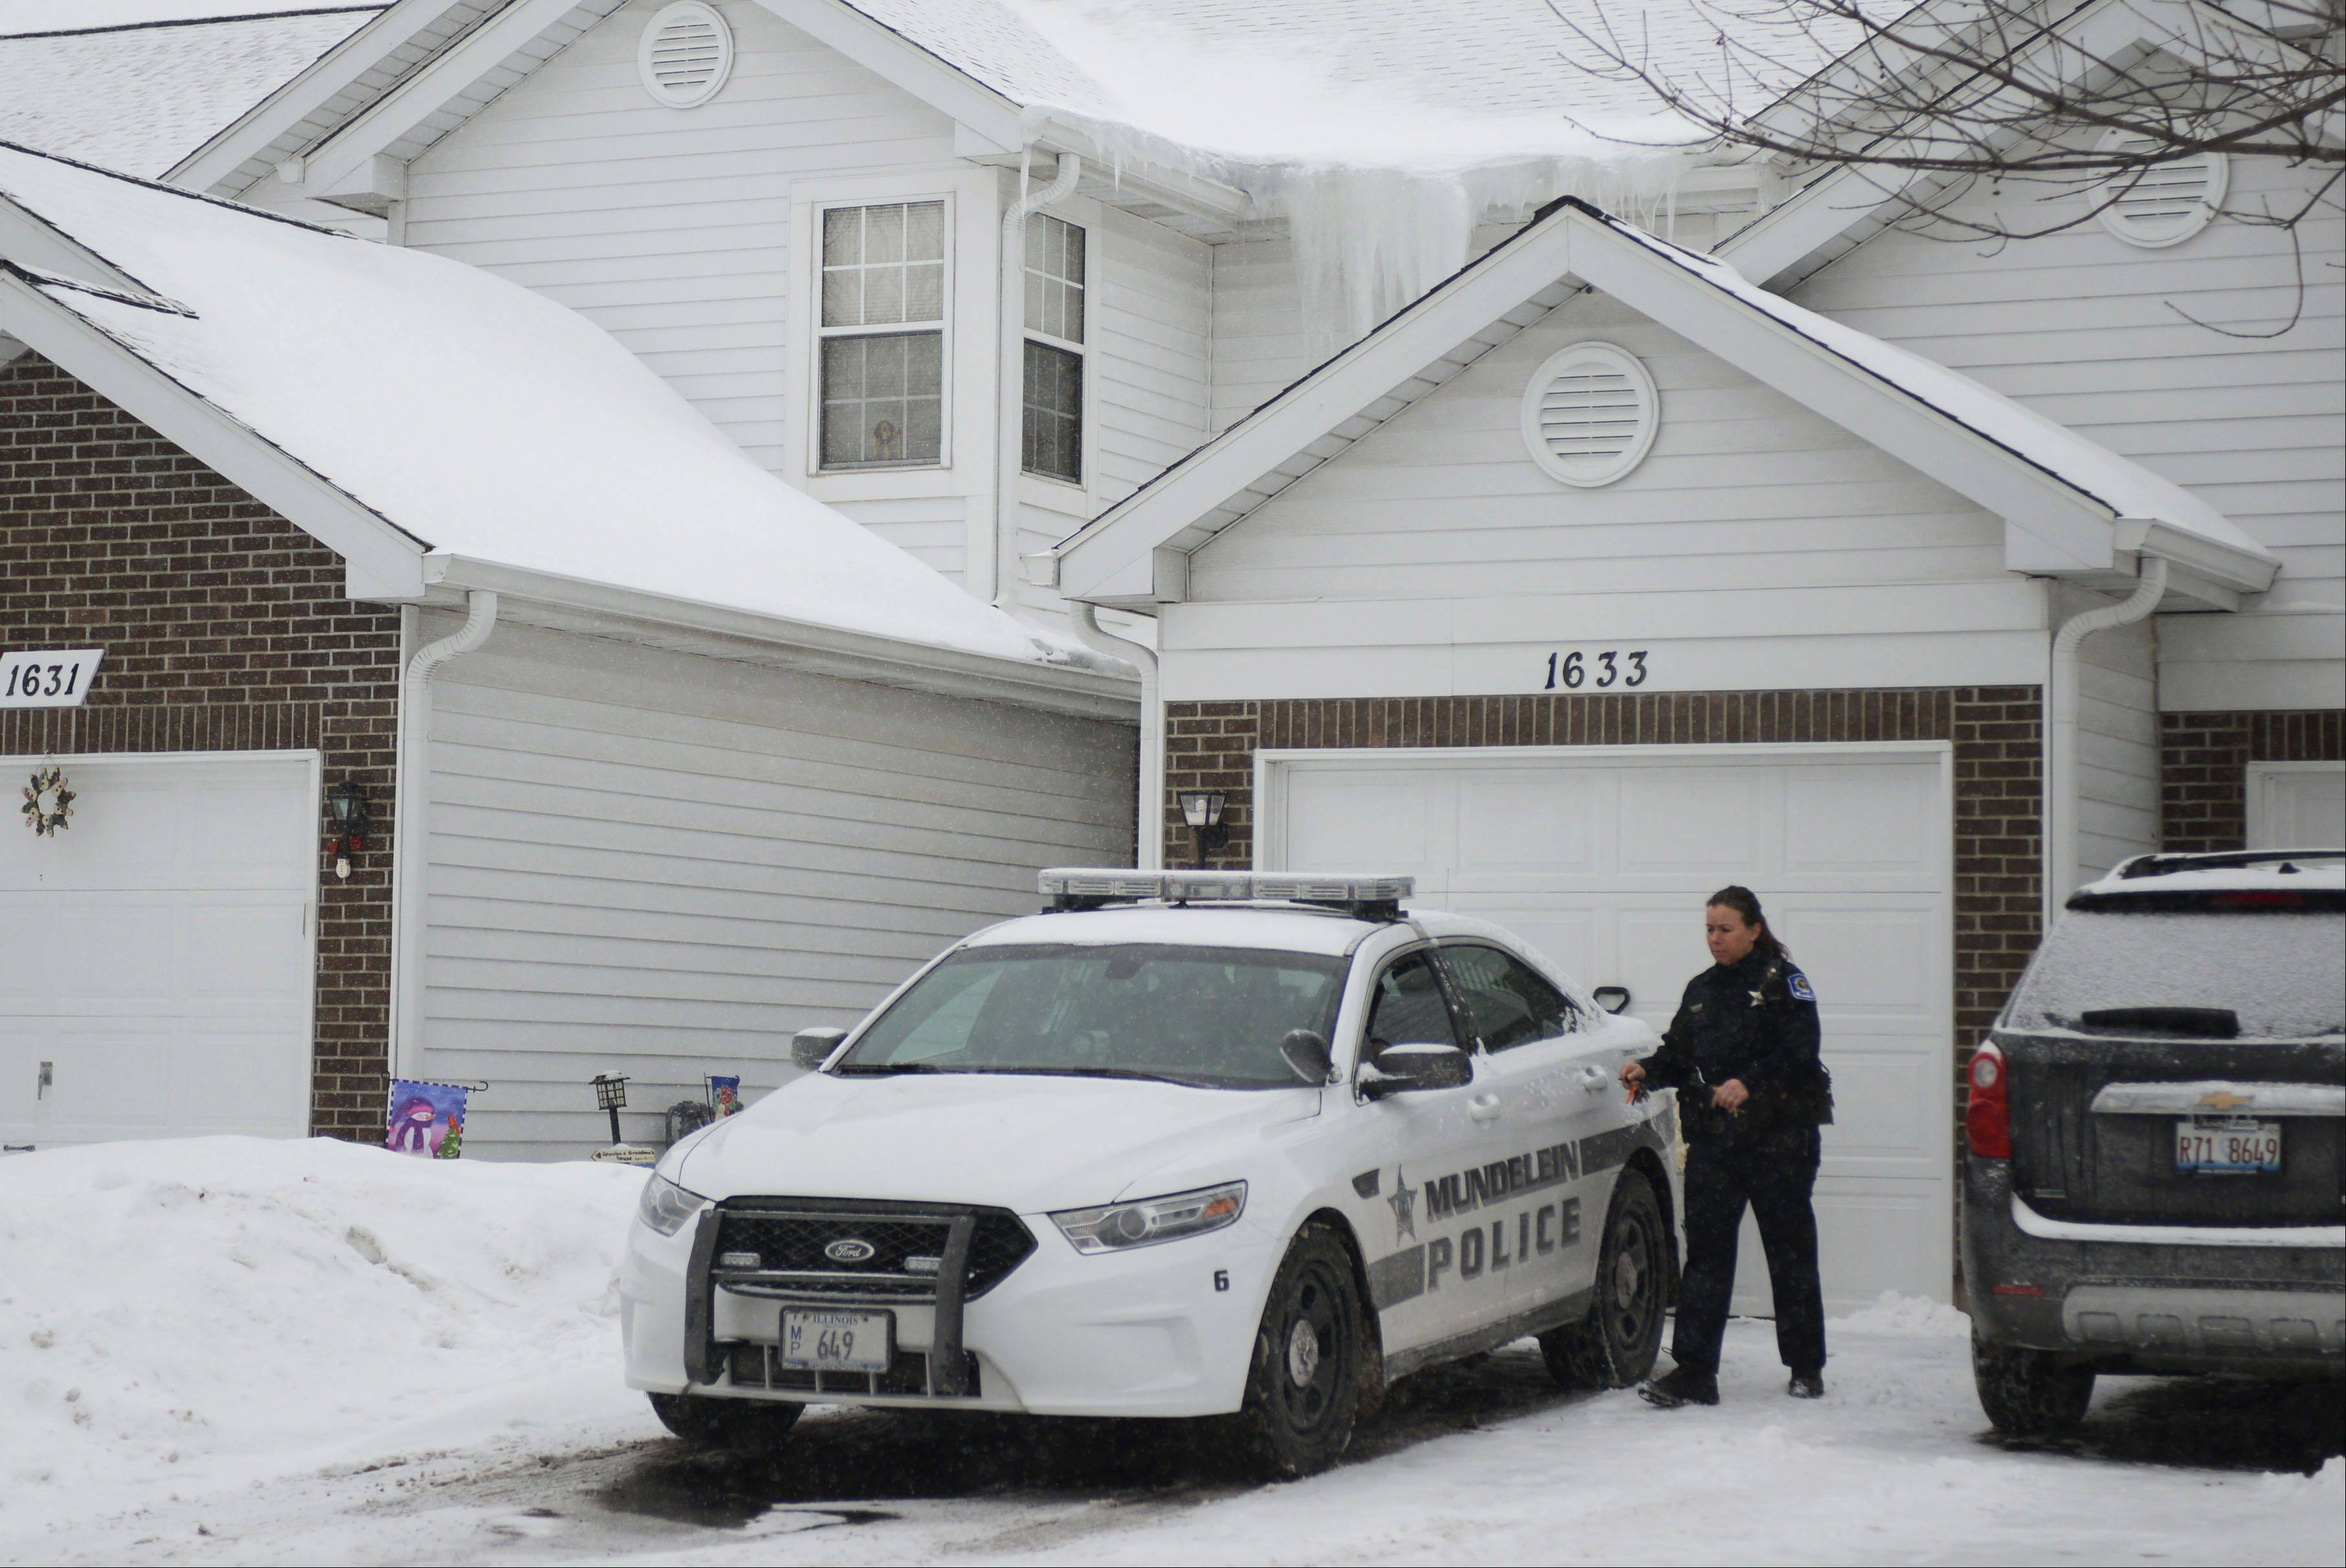 Mundelein police remain at the Mundelein home on Wednesday where an 11-year-old girl was killed Tuesday. The victim's 14-year-old half-sister faces first-degree murder charges, authorities said.